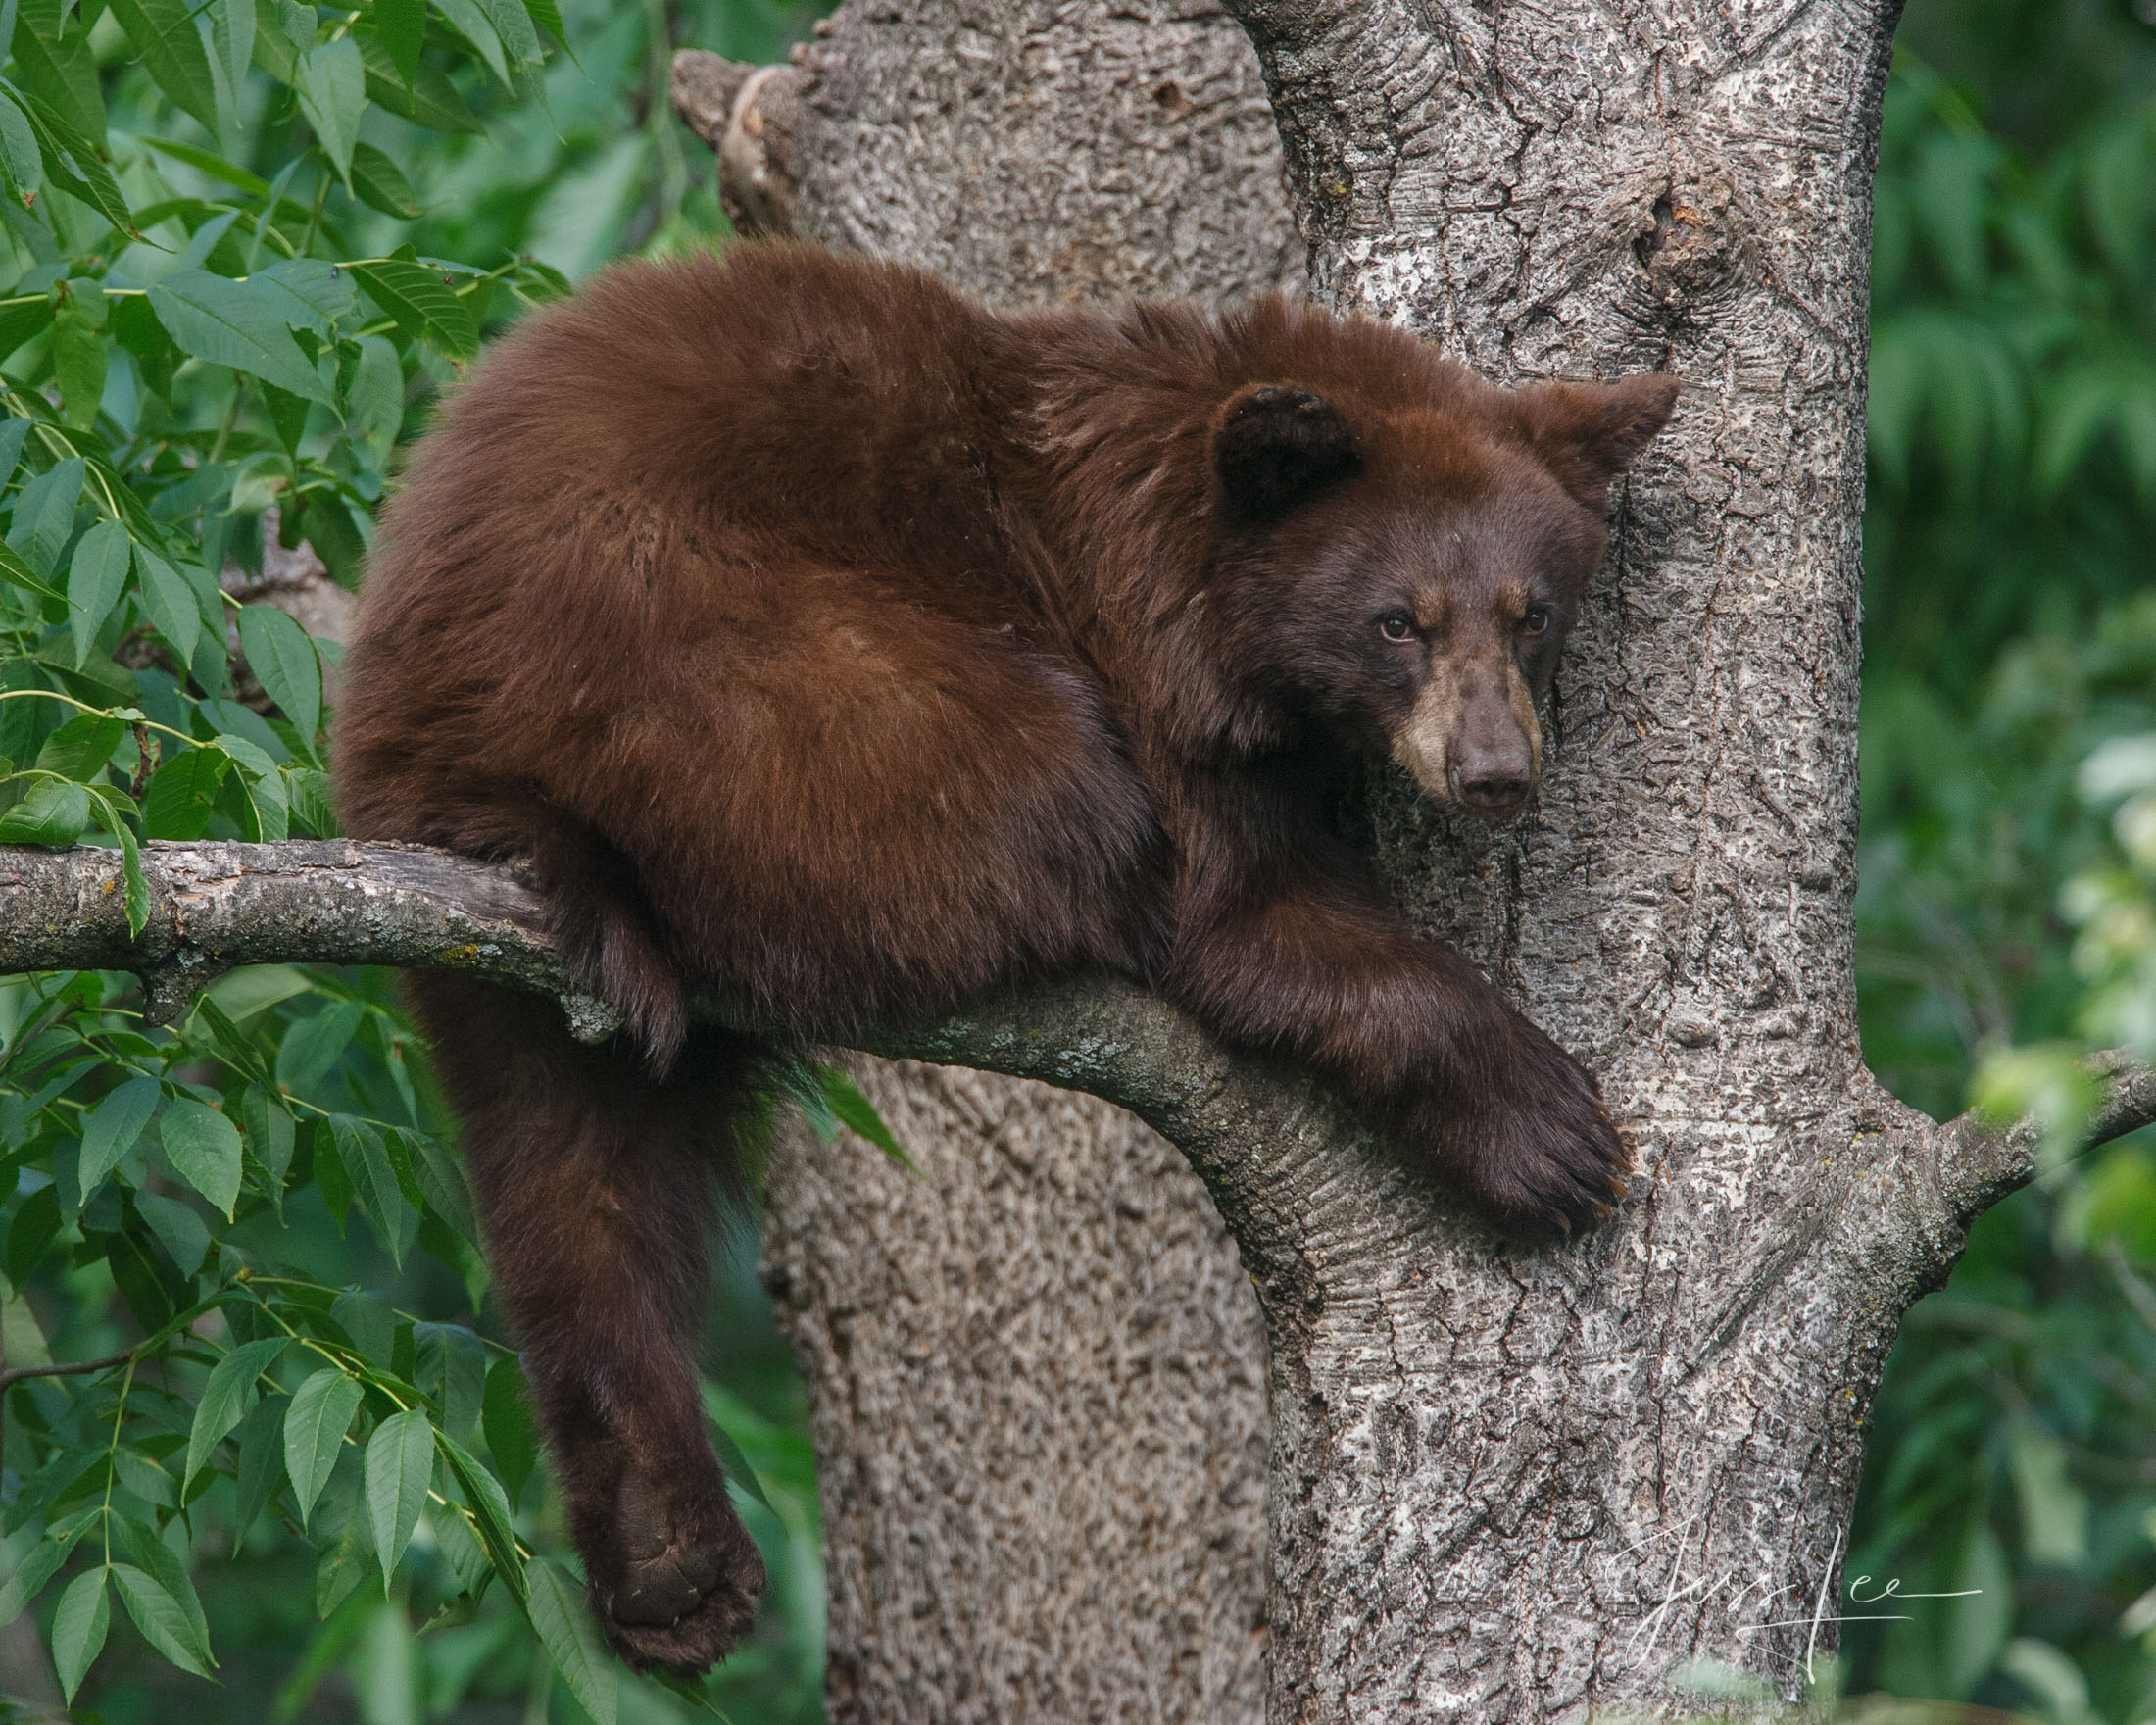 Grumpy Black Bear in a tree Photo  Limited Edition Picture of 100 prints. These bear photographs are offered as high-quality...